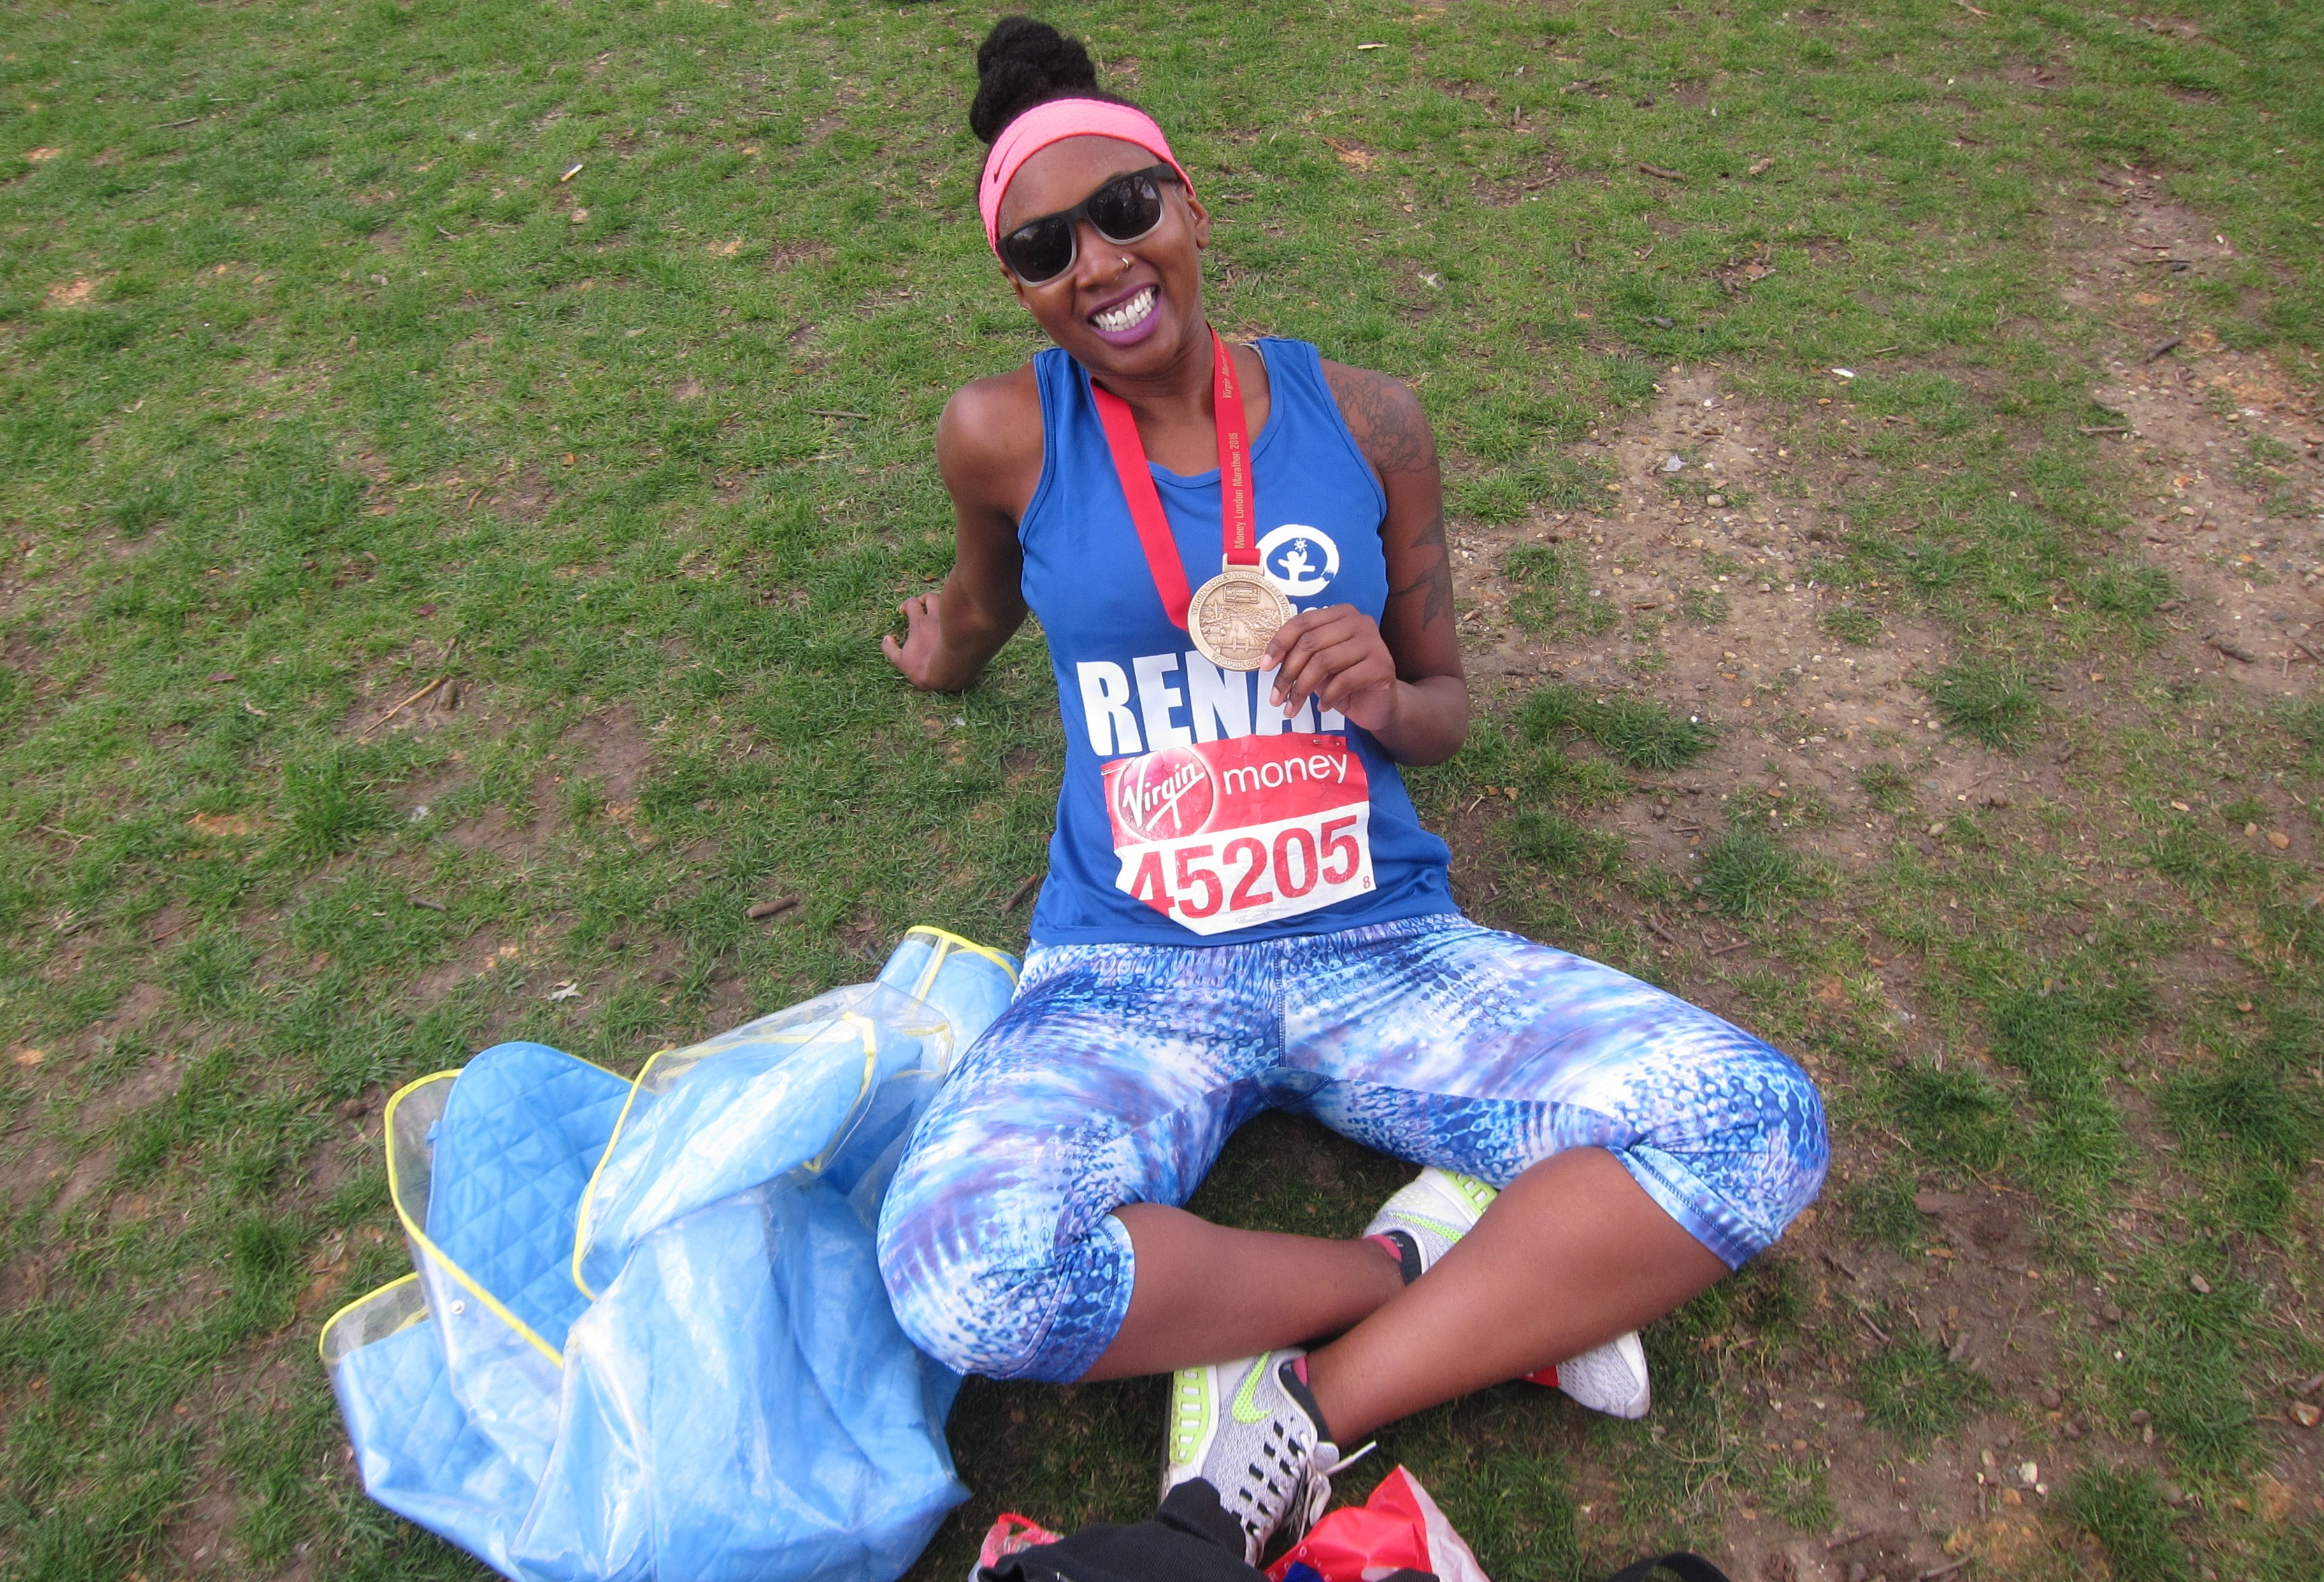 Plan International UK marathon runner Renay